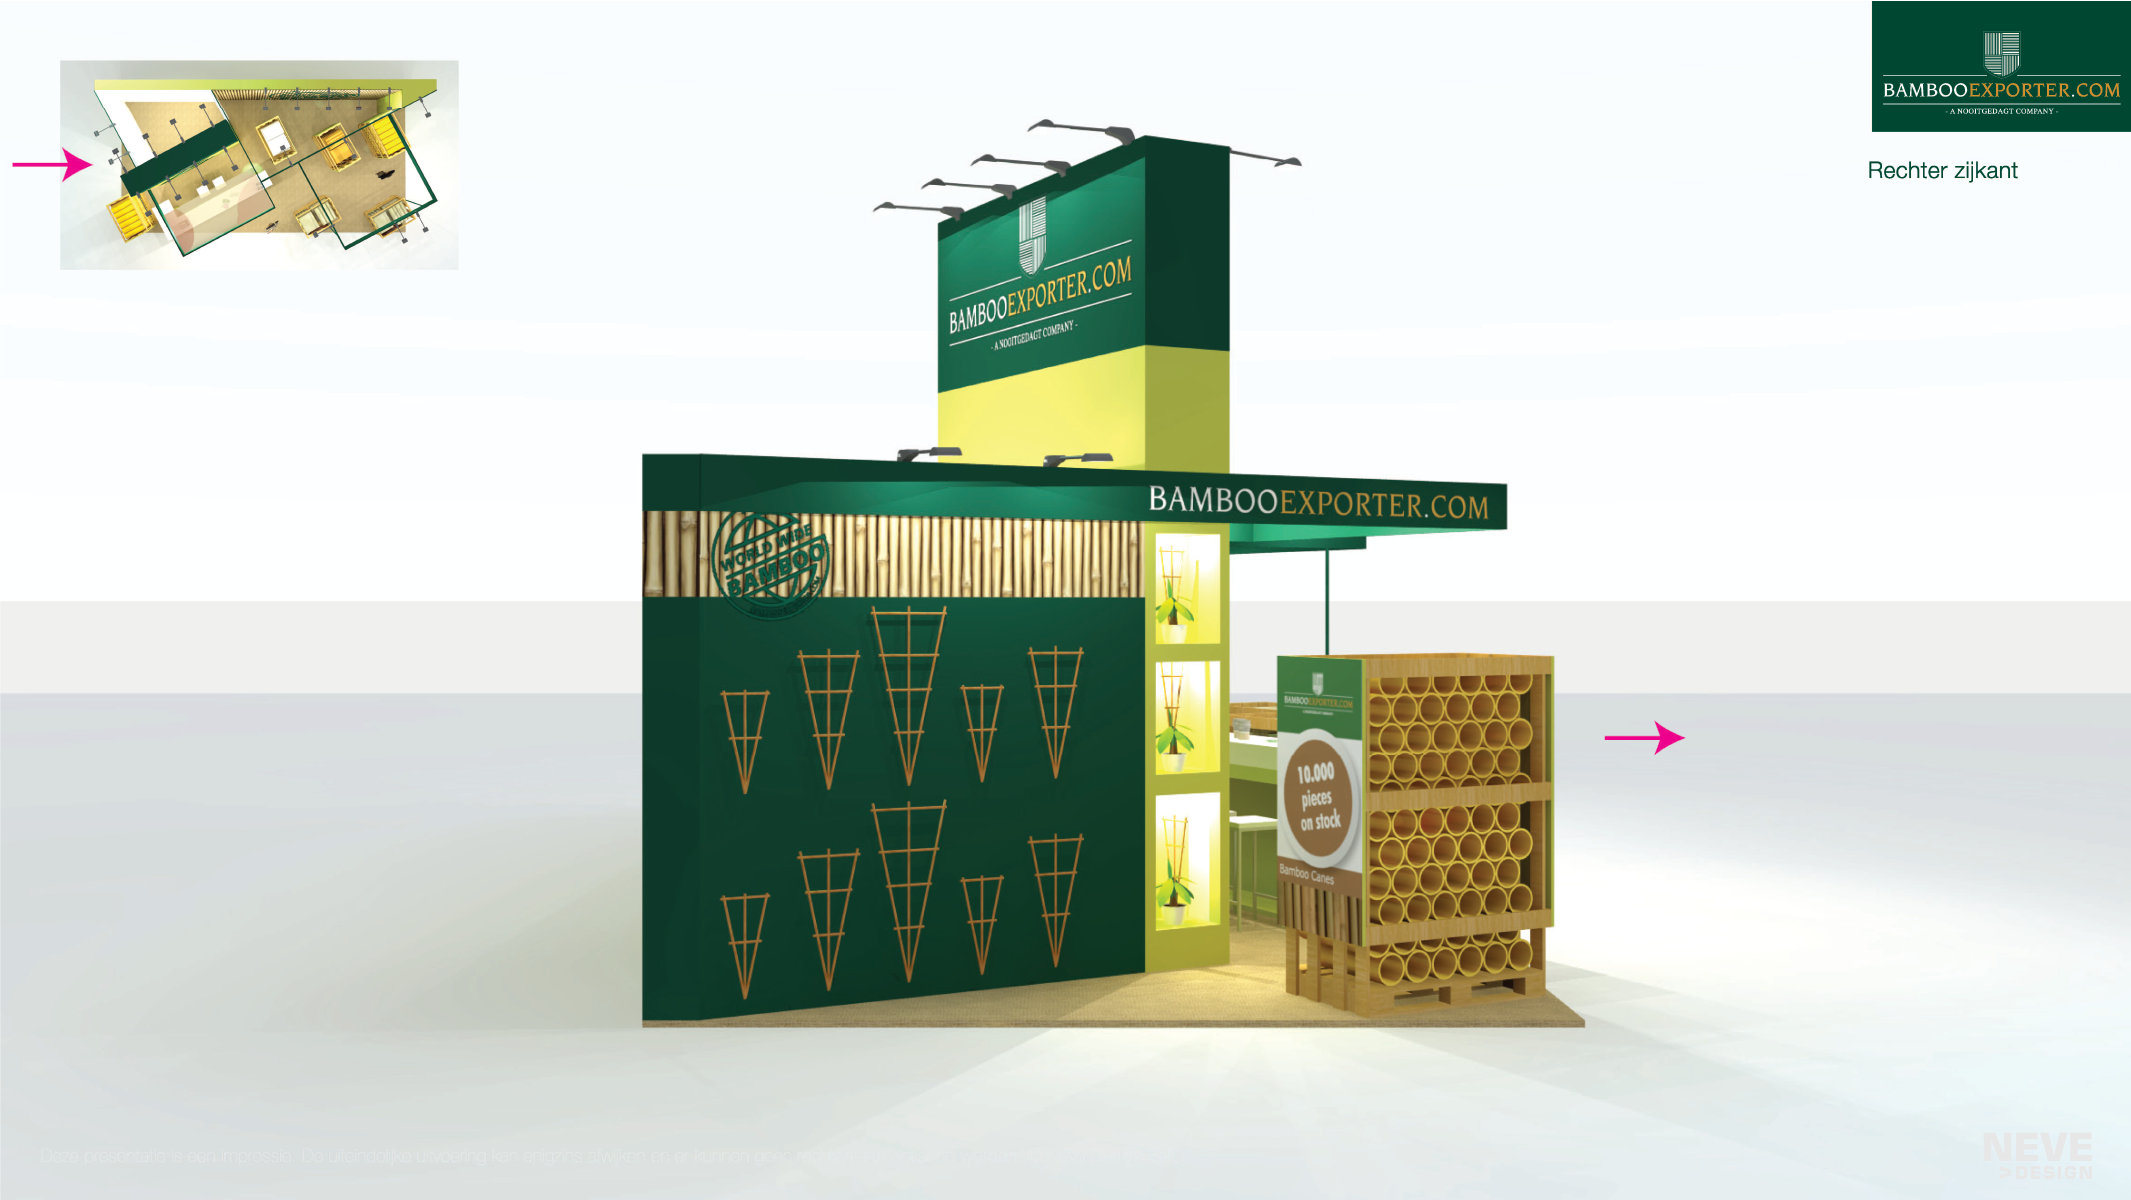 Bamboo_Exporter-stand-Project-07